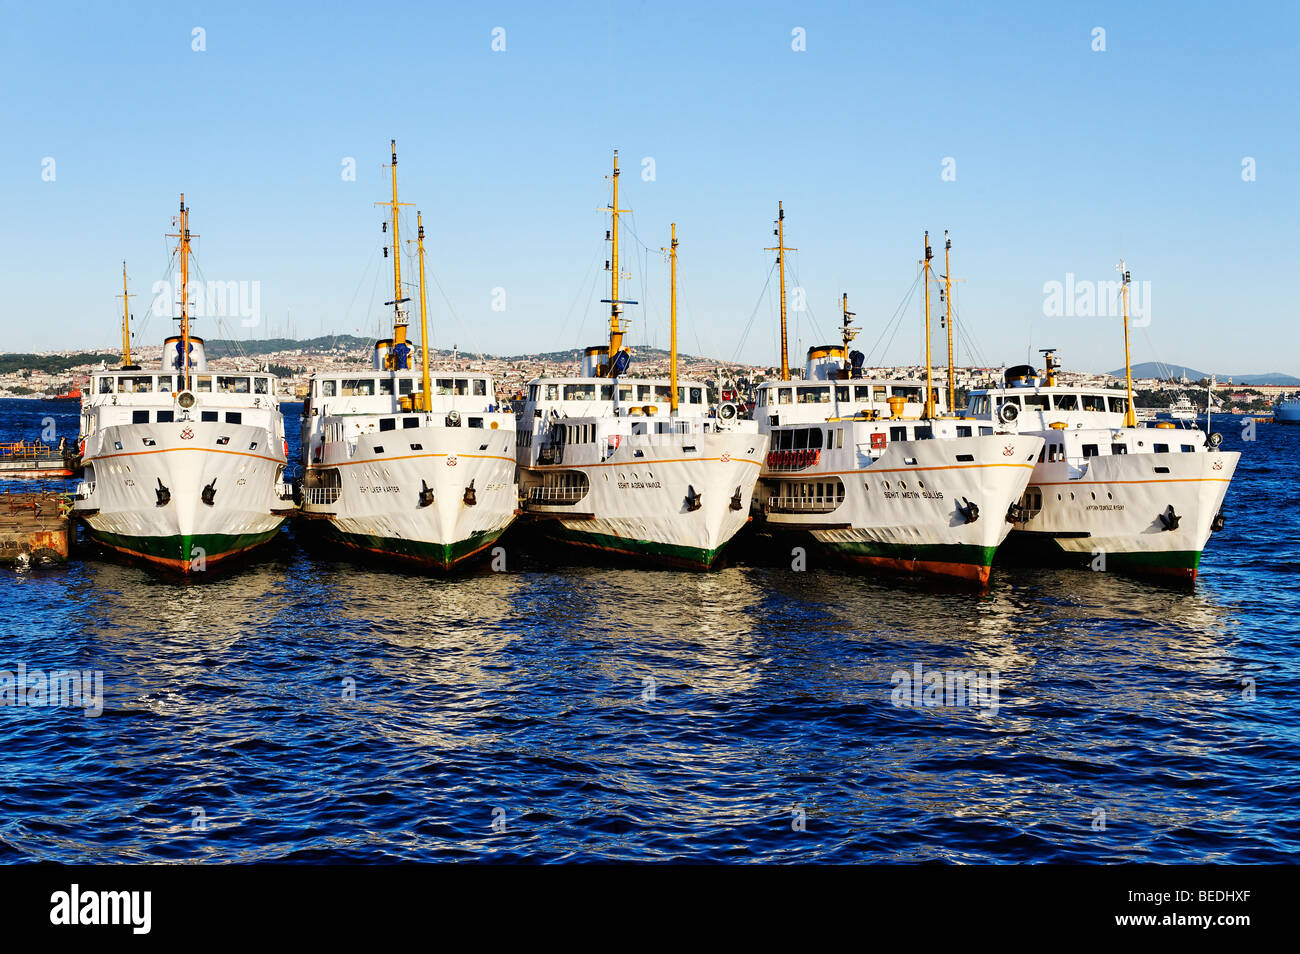 View from the Galata Bridge of Bosphorus ferries moored on the quayside in the Beyoglu District of Istanbul. - Stock Image